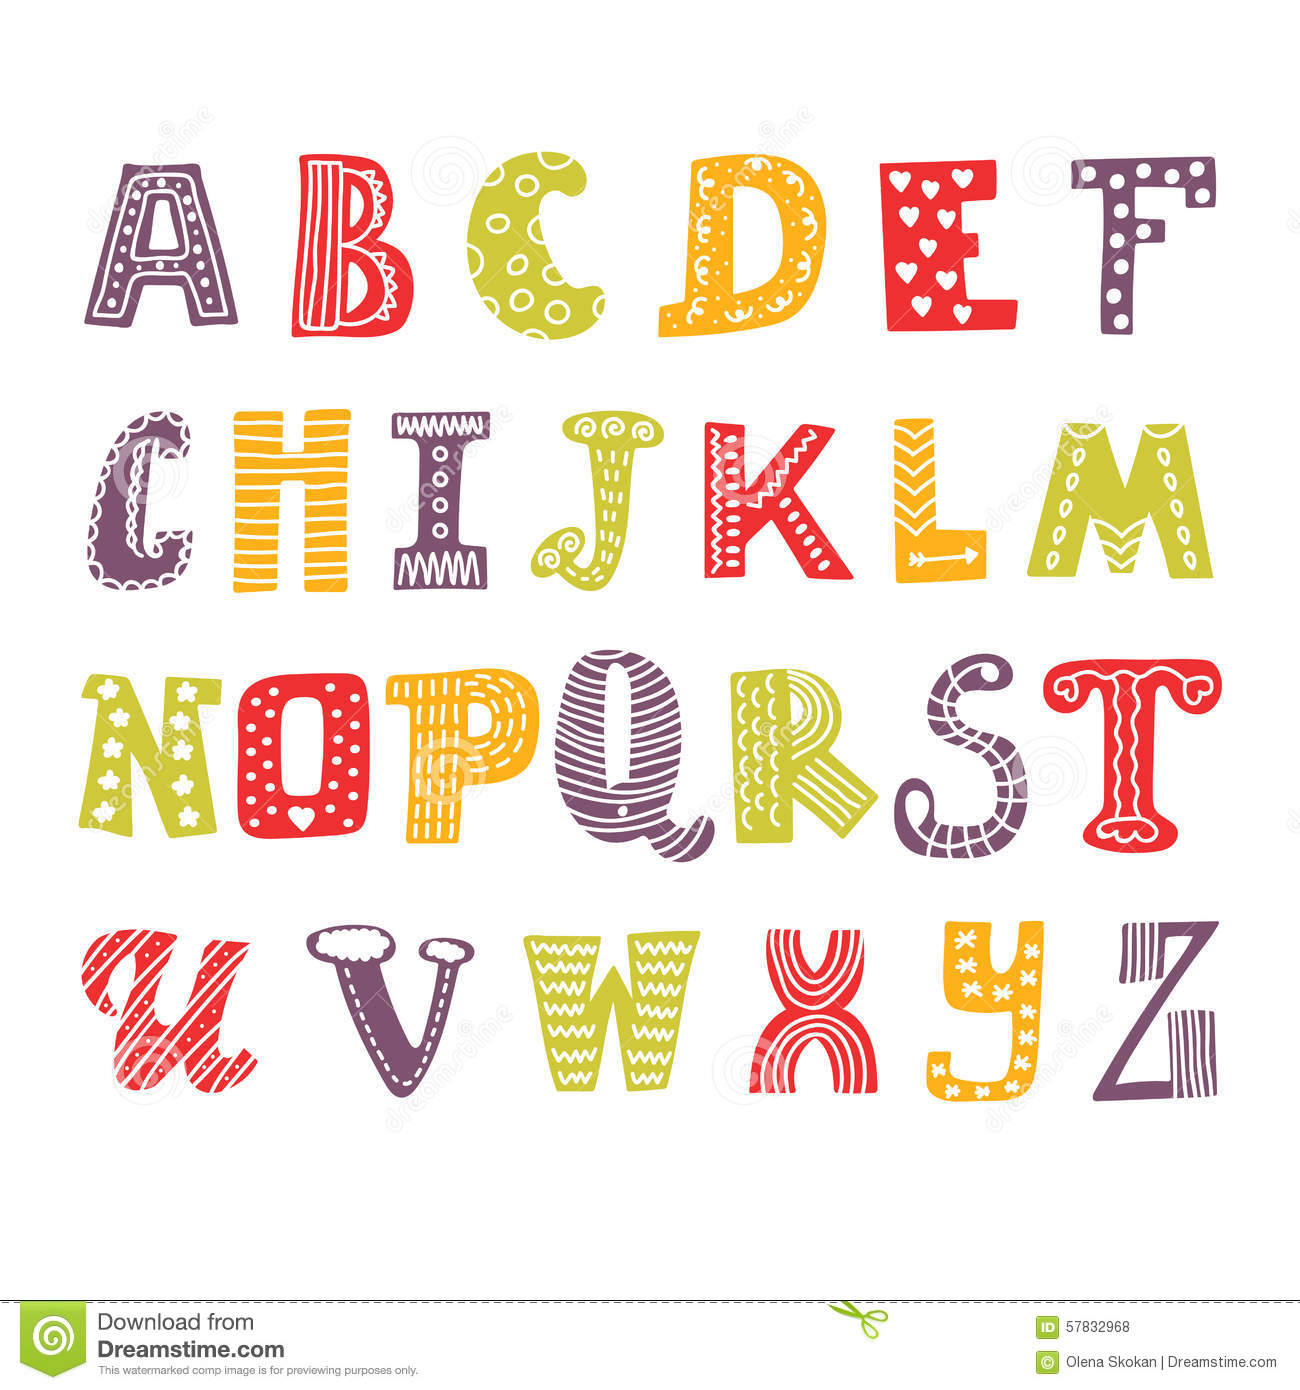 Fonts Alphabet To Draw Pixshark Images